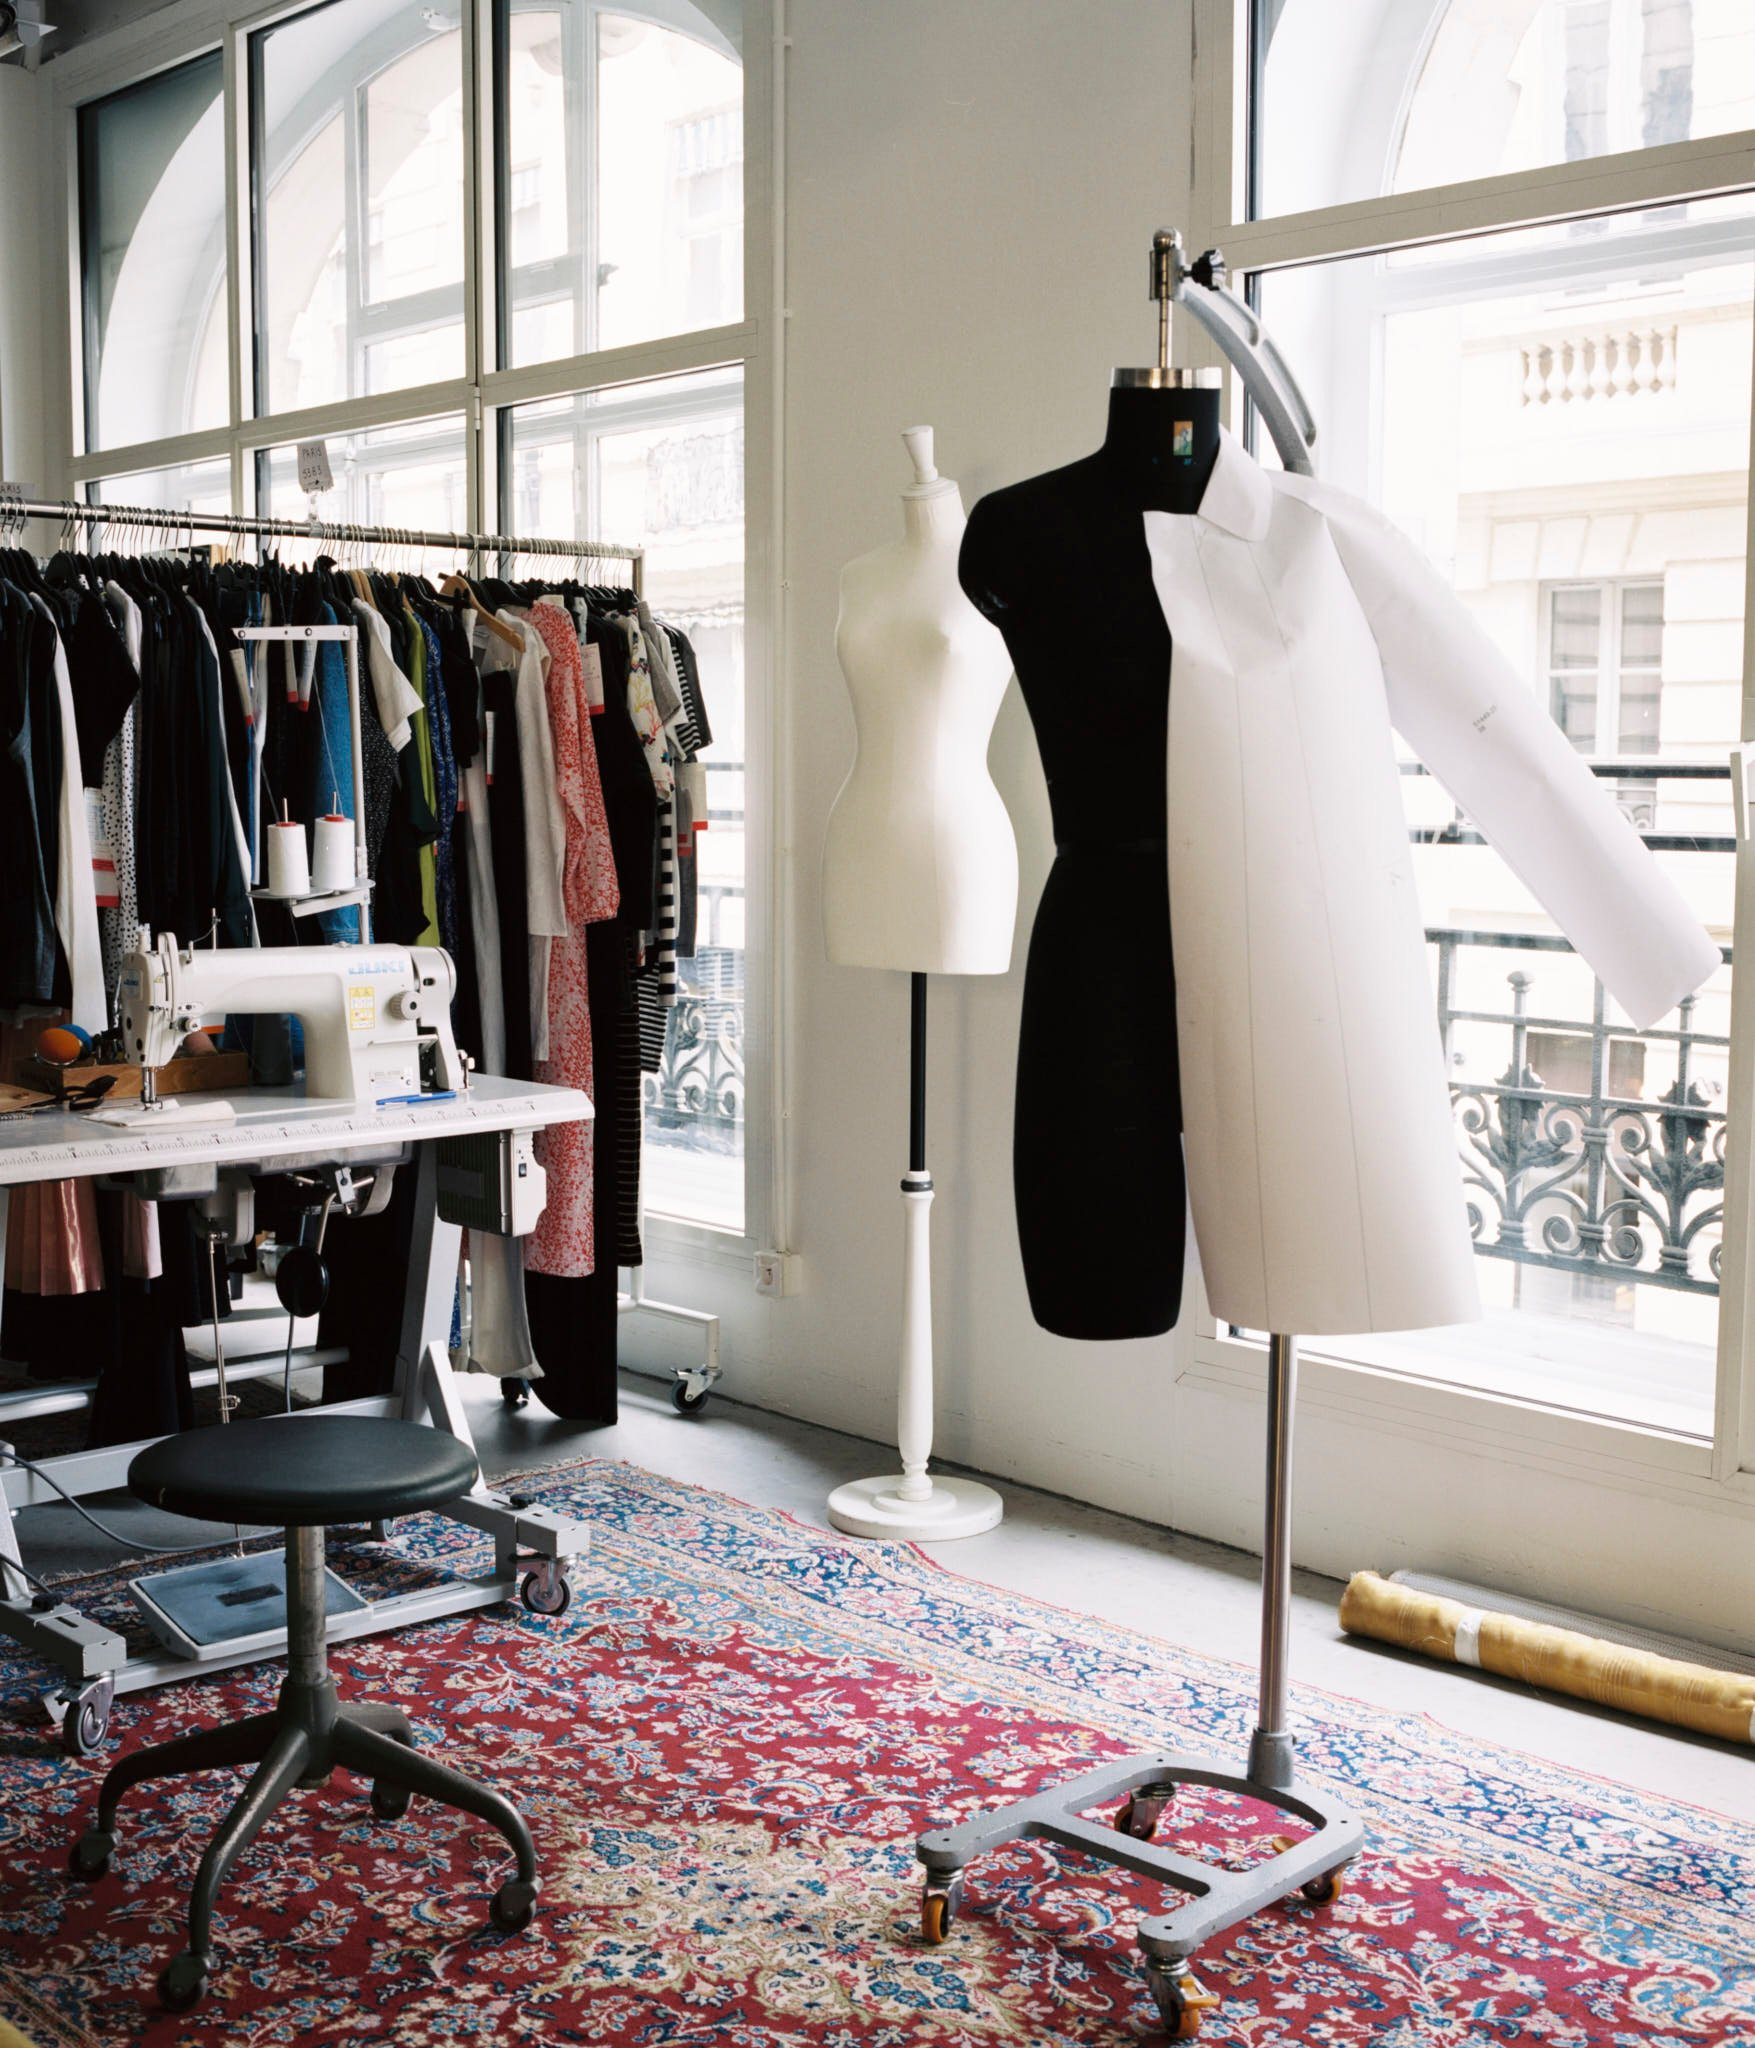 Paris atelier & Other stories